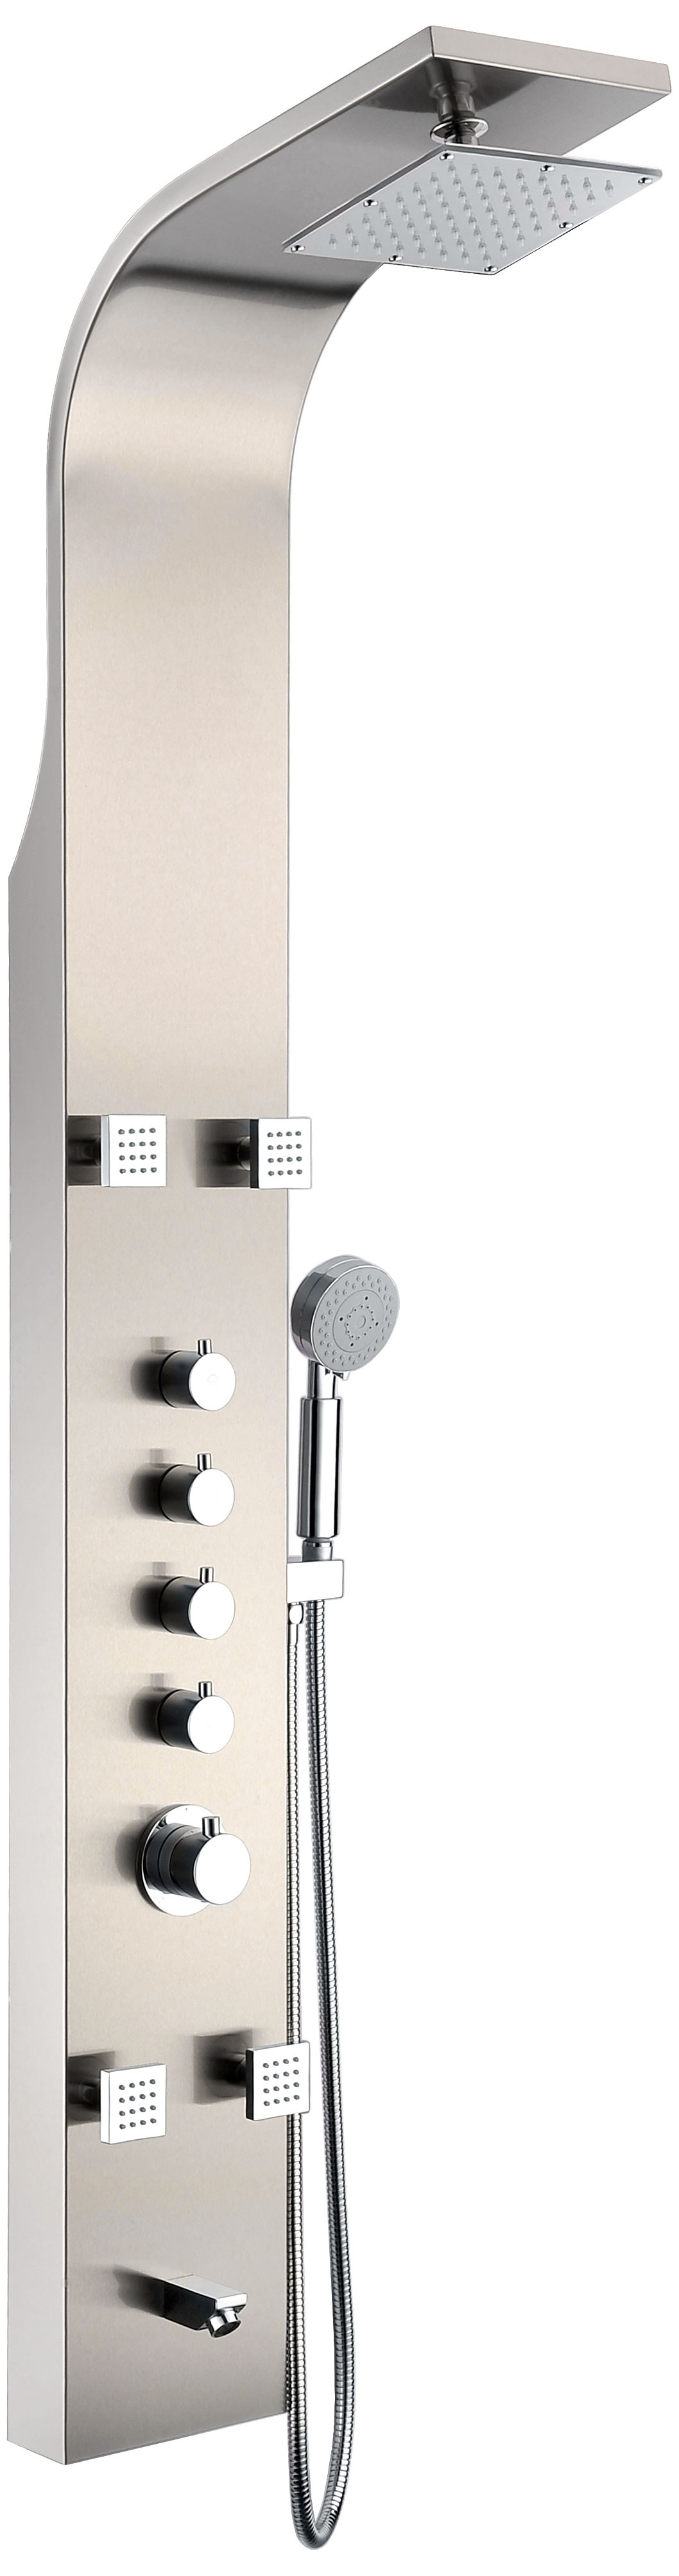 ANZZI SP-AZ022 Thermostatic Shower Panel System In Brushed Stainless Steel